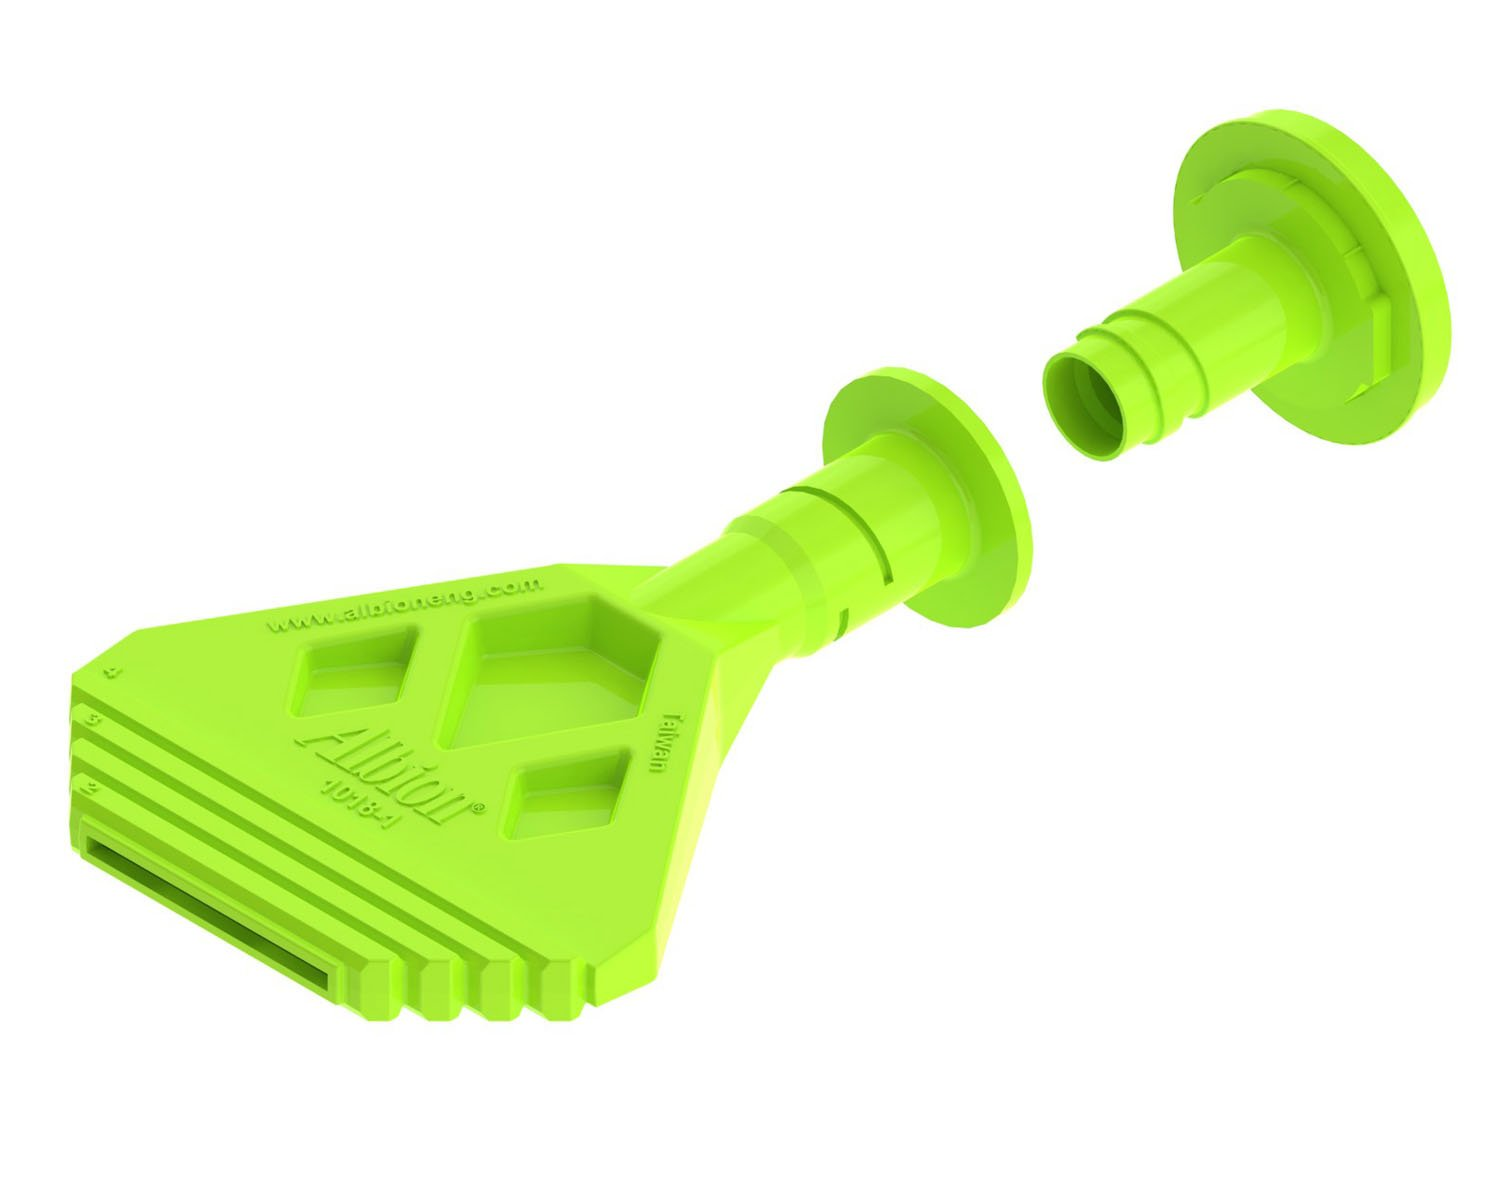 Albion Engineering 935-1(3 Pack) Angle Shot Green Plastic Nozzle for 1/10 Gallon Cartridges, Pack of 3